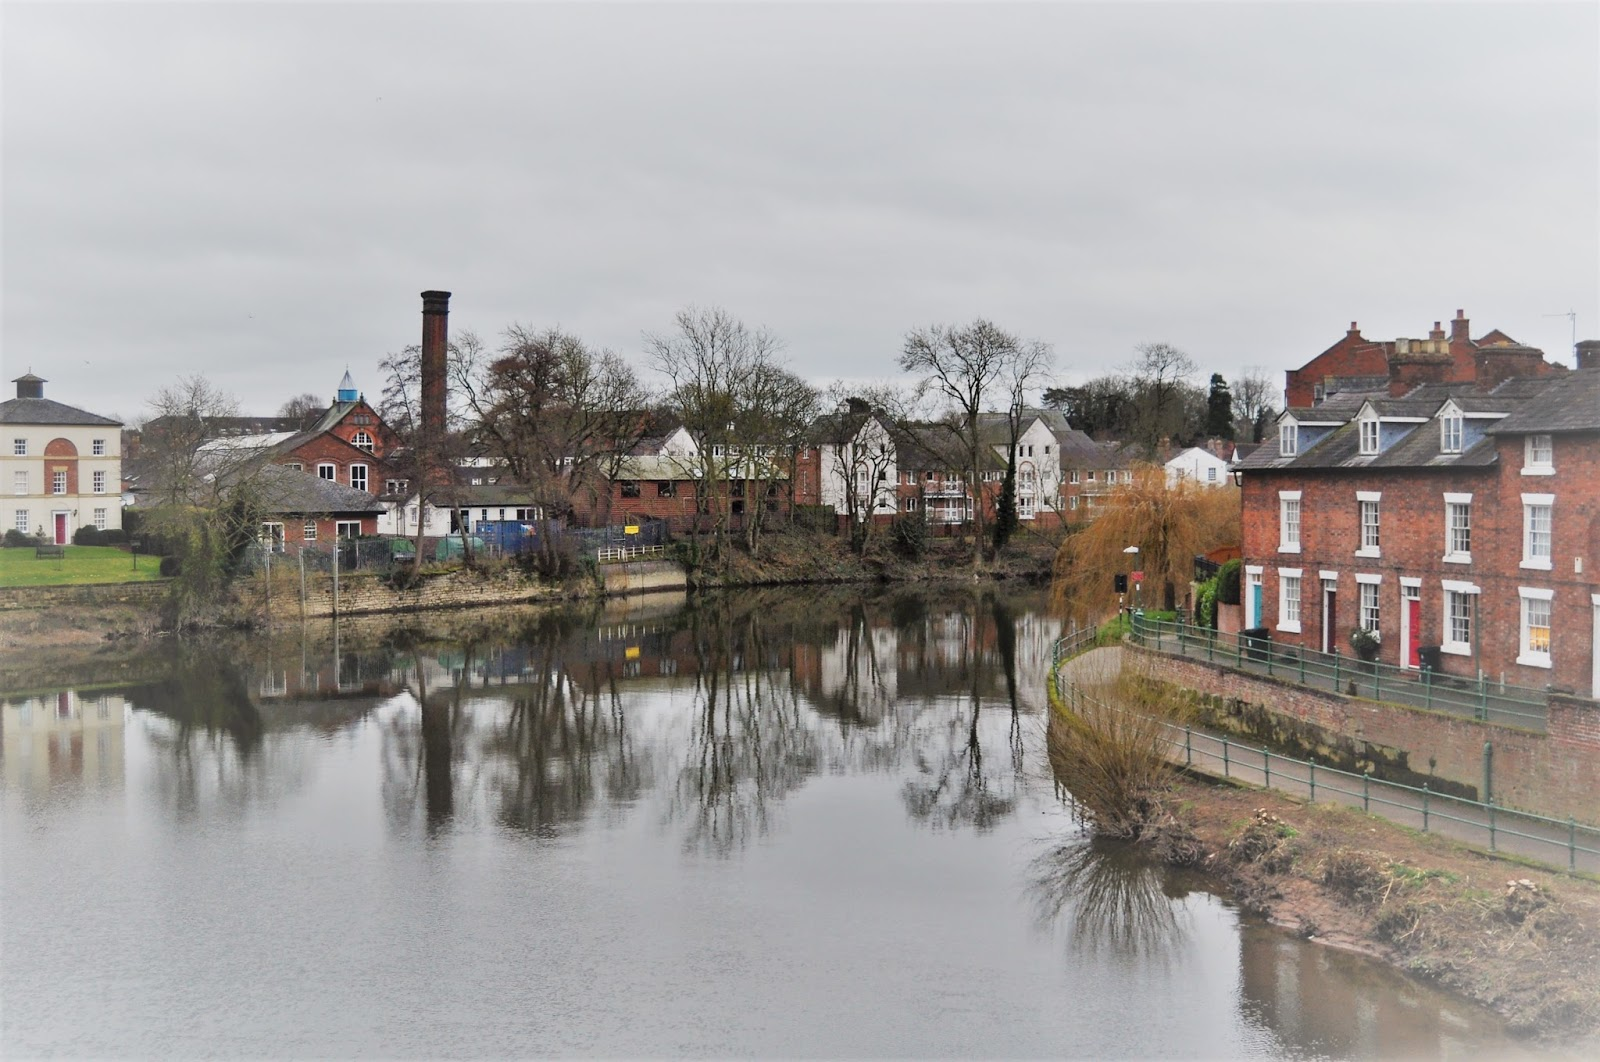 Days Away - A Visit To Shrewsbury, Shropshire, photo by modern bric a brac